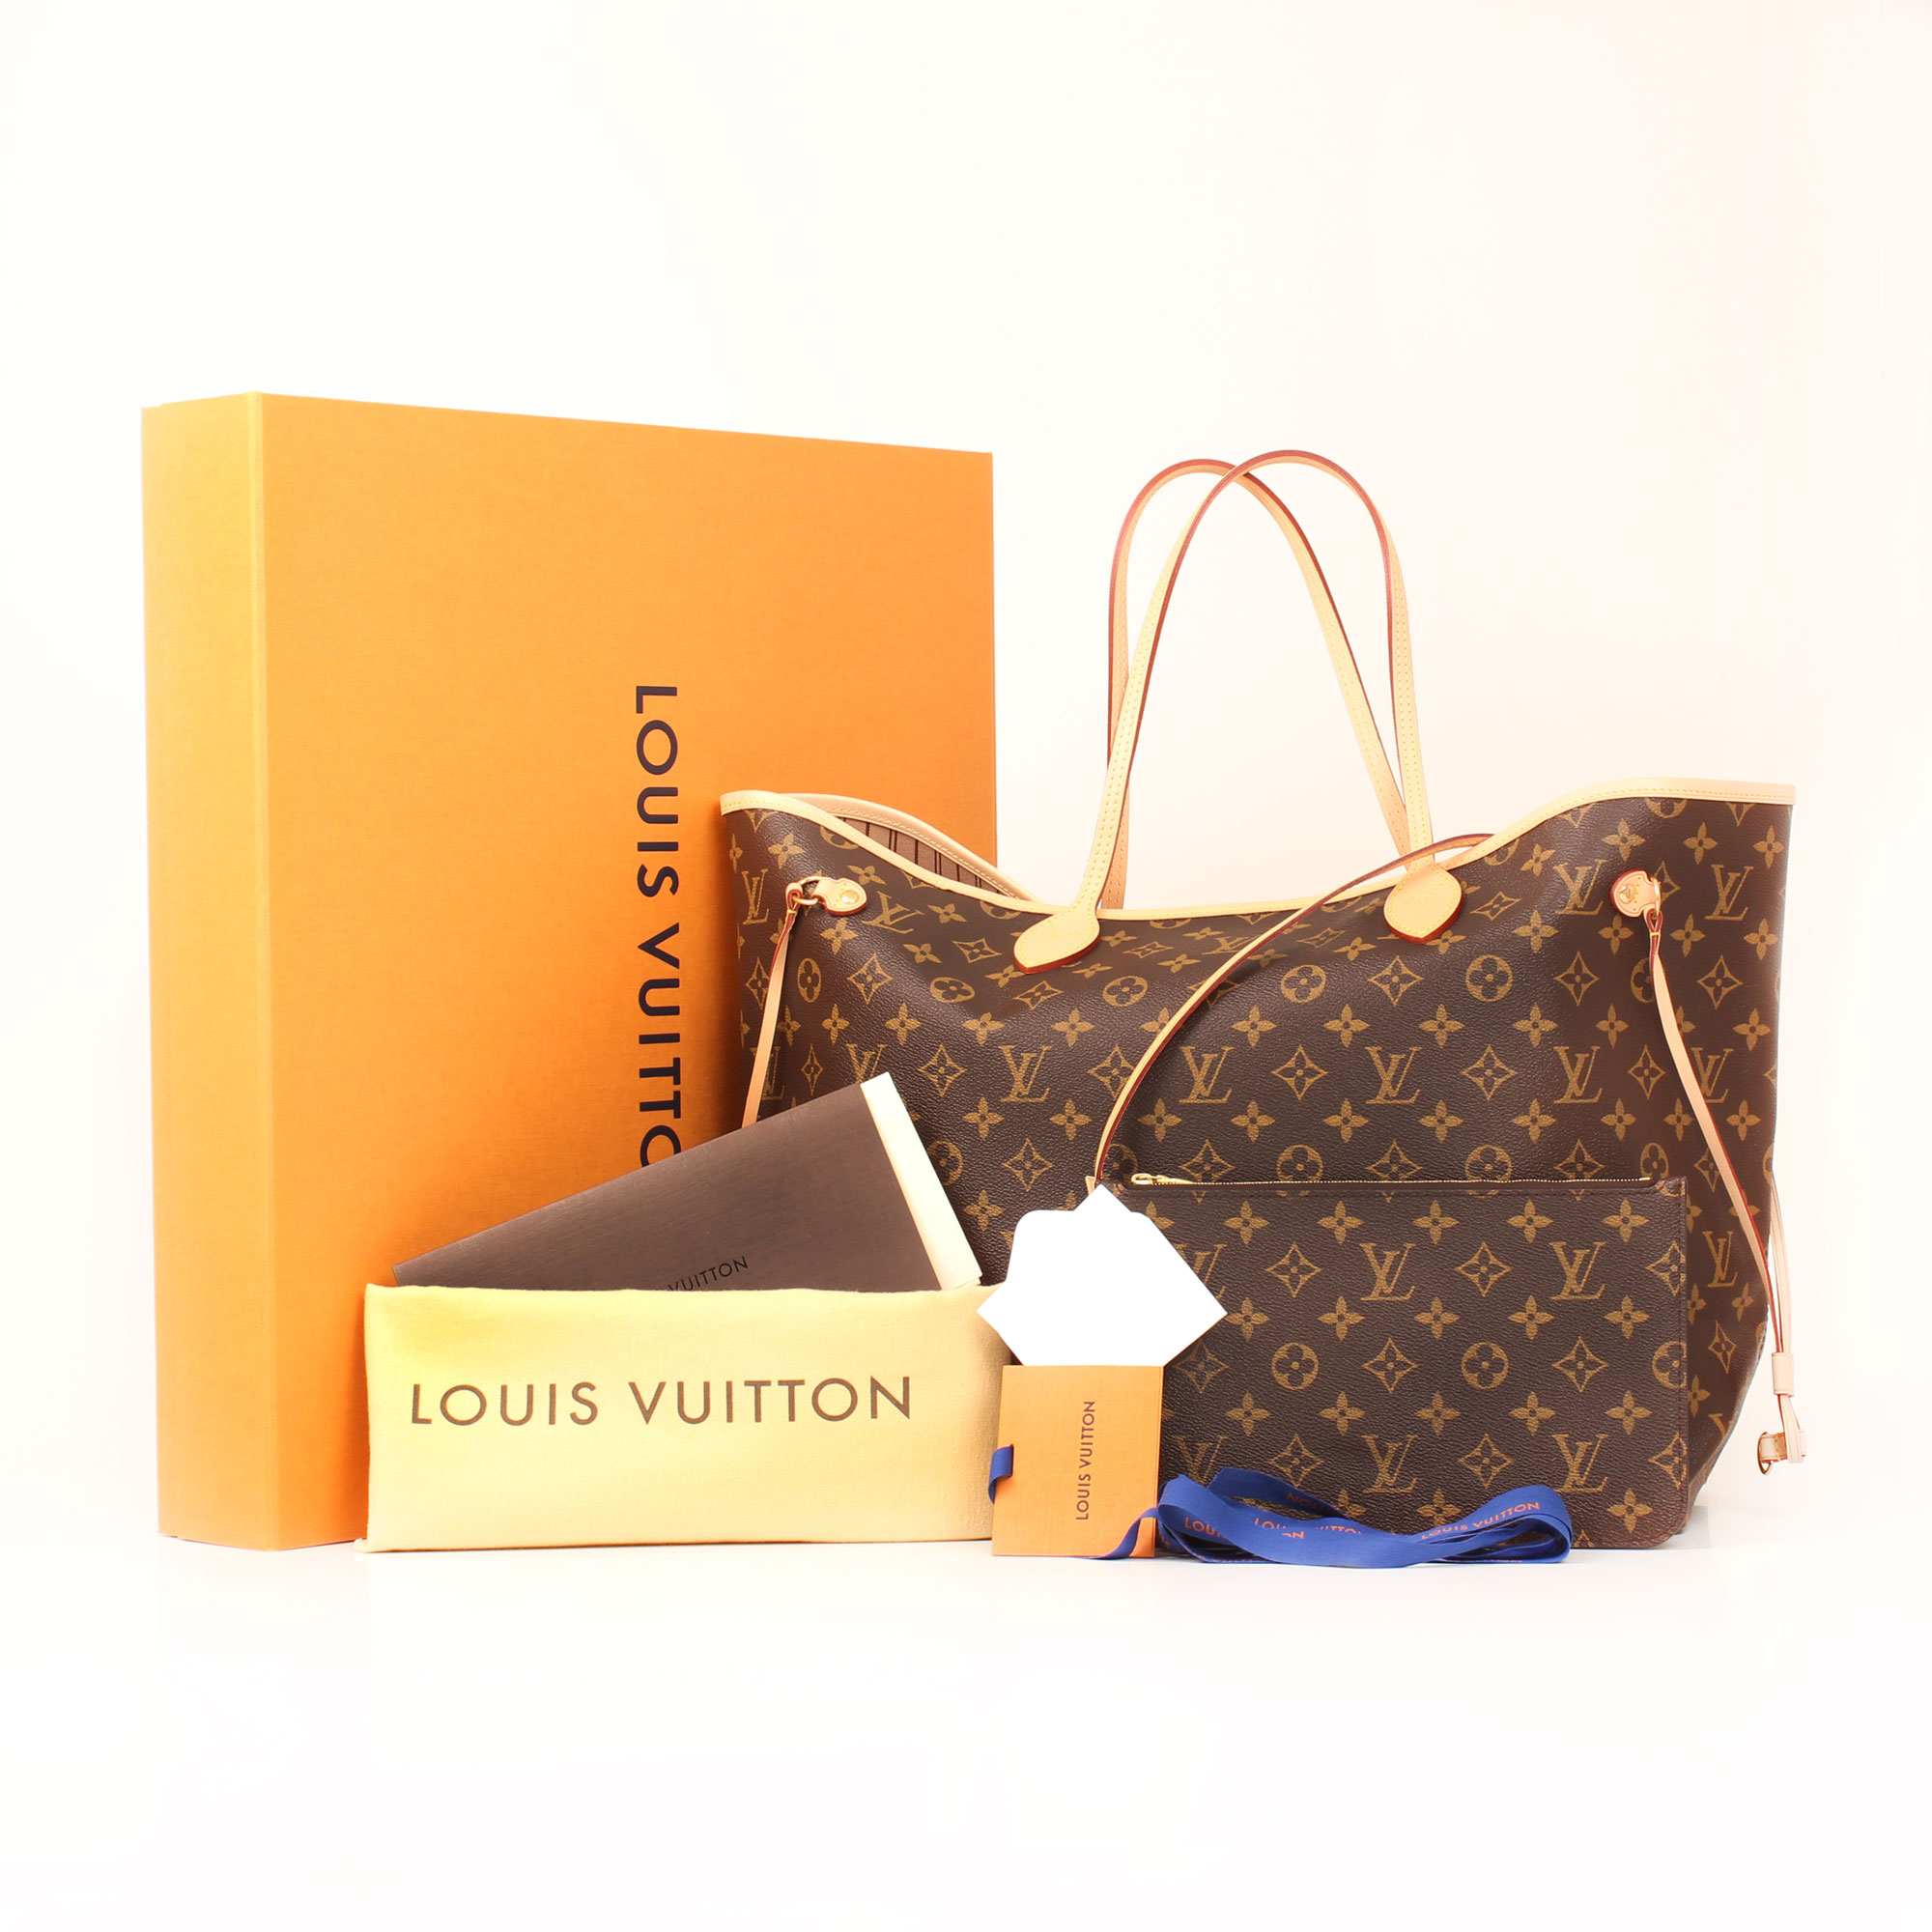 bag-louis-vuitton-neverfull-gm-monogram-new-dustbag-box-ticket